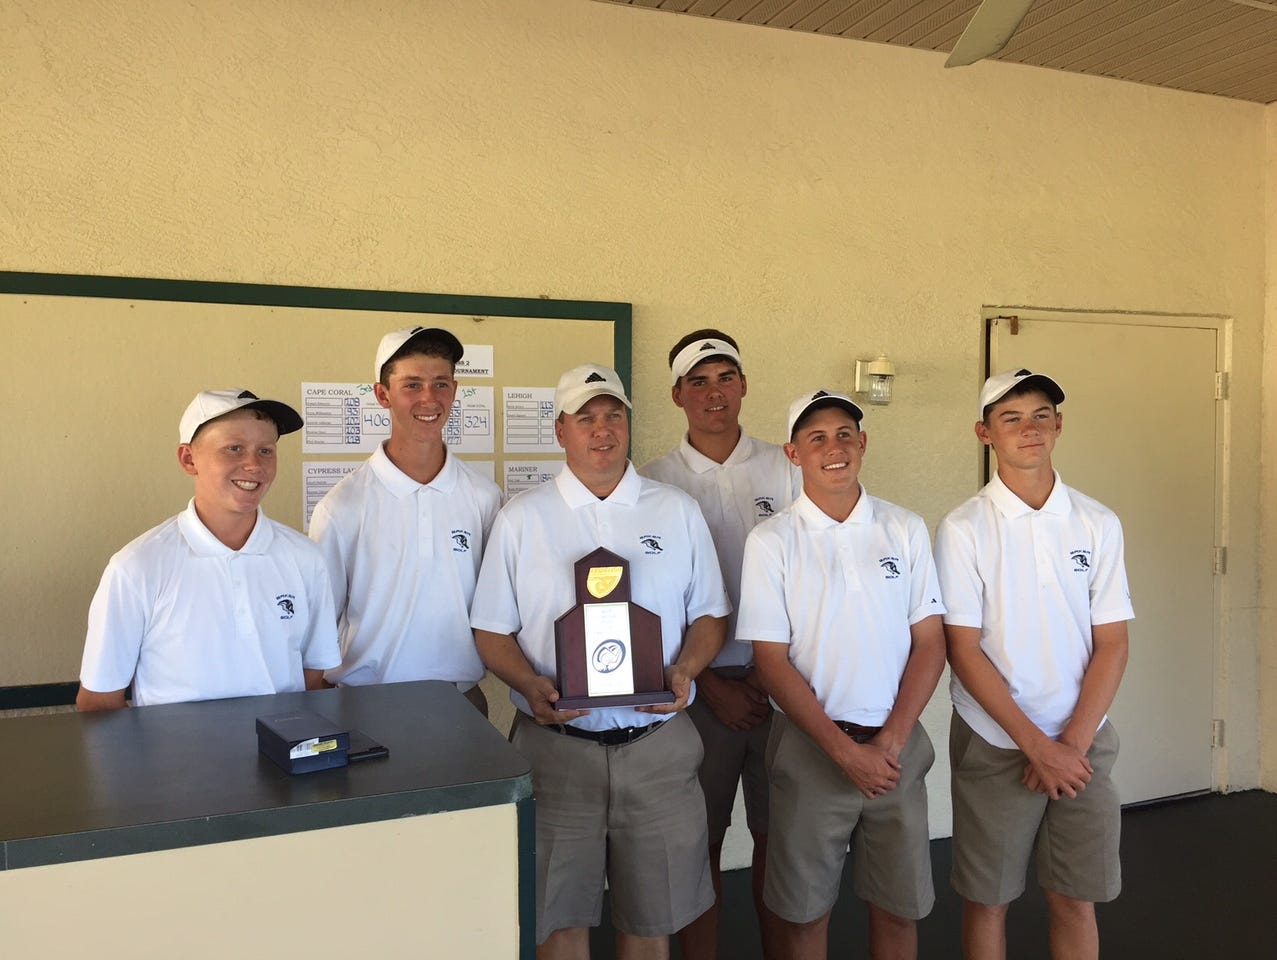 The Ida Baker golf team poses for a picture after its District 2A-20 victory on Monday in Cape Coral.